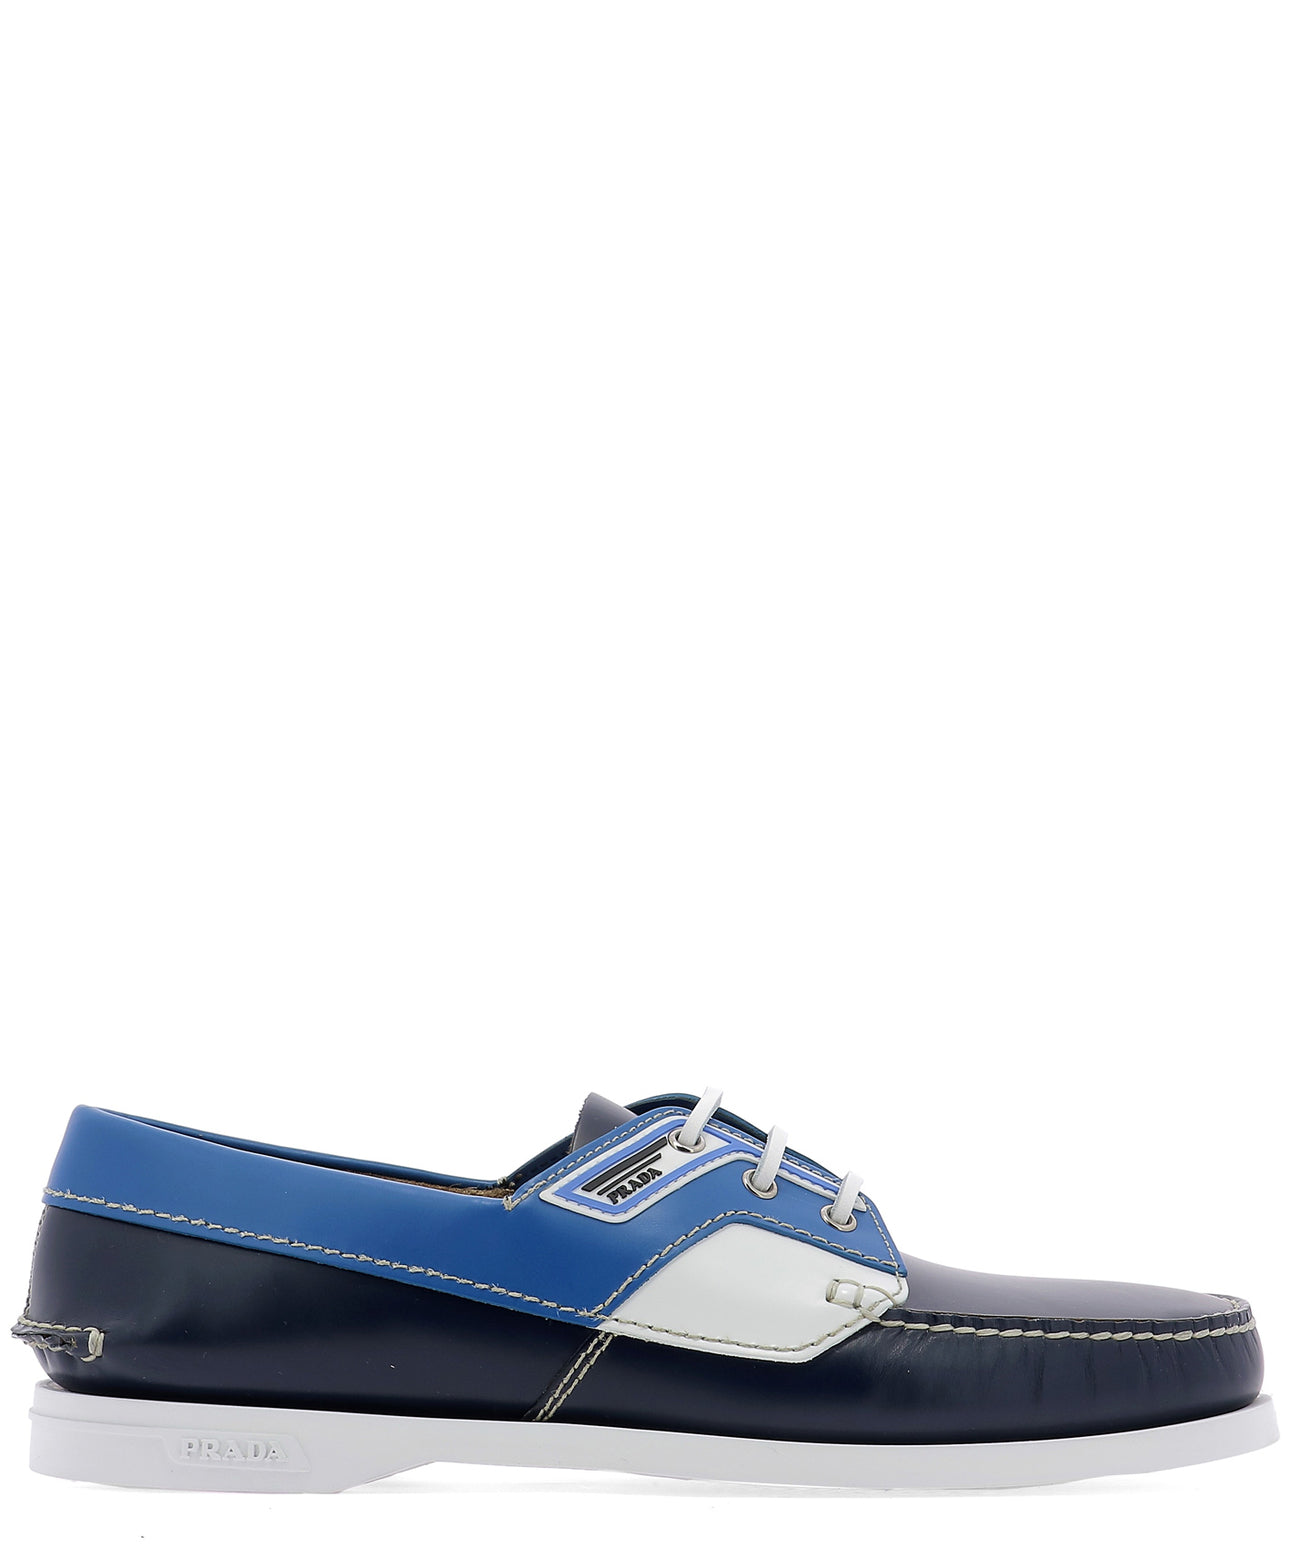 Prada Loafers PRADA LACE UP BOAT LOAFERS